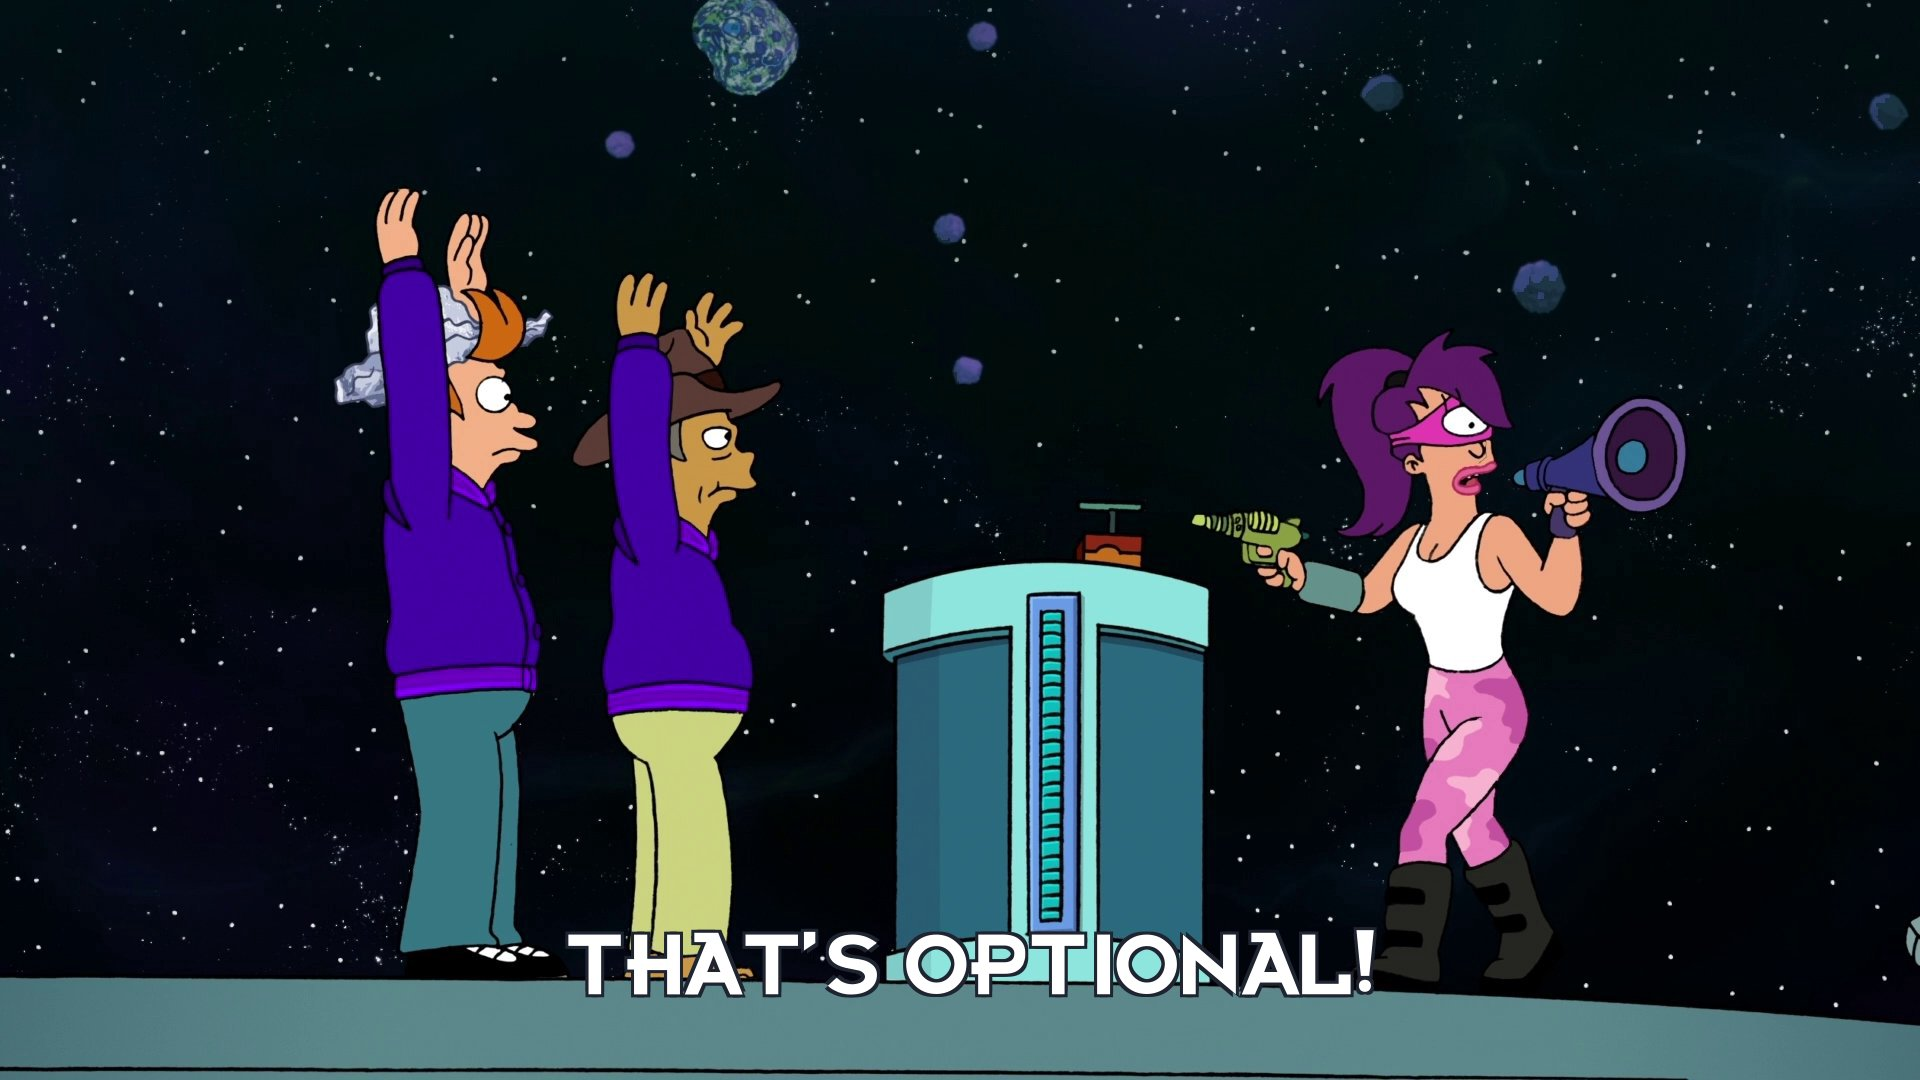 Turanga Leela: That's optional!